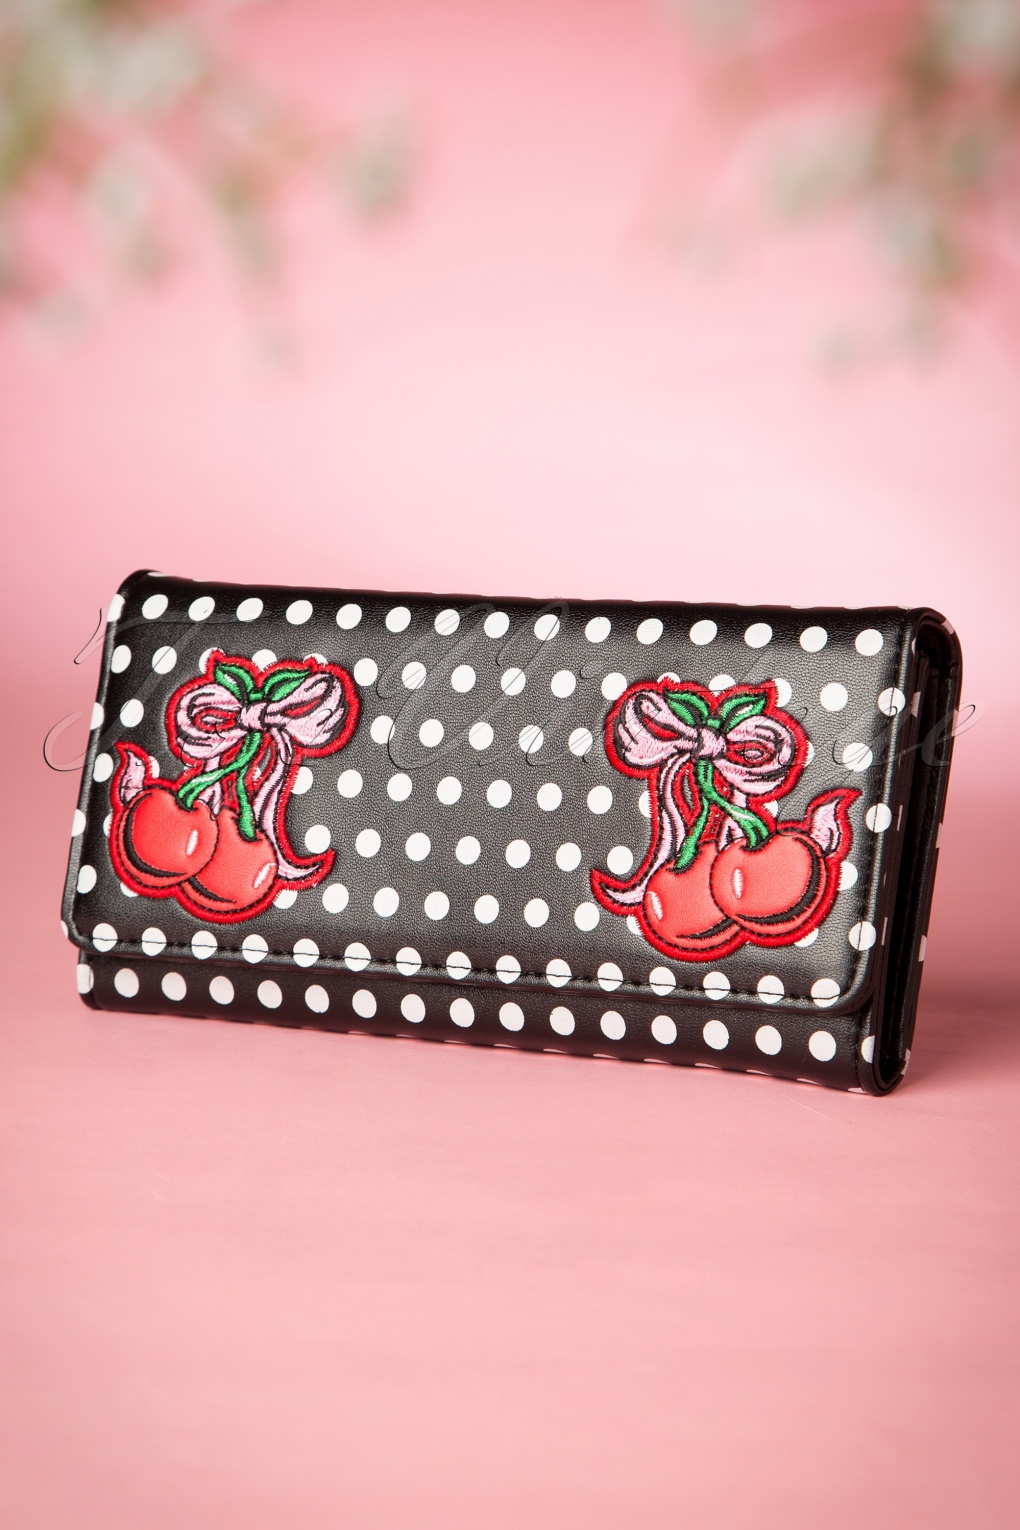 Vintage & Retro Handbags, Purses, Wallets, Bags 50s Lucille Cherry Polka Purse in Black �24.68 AT vintagedancer.com